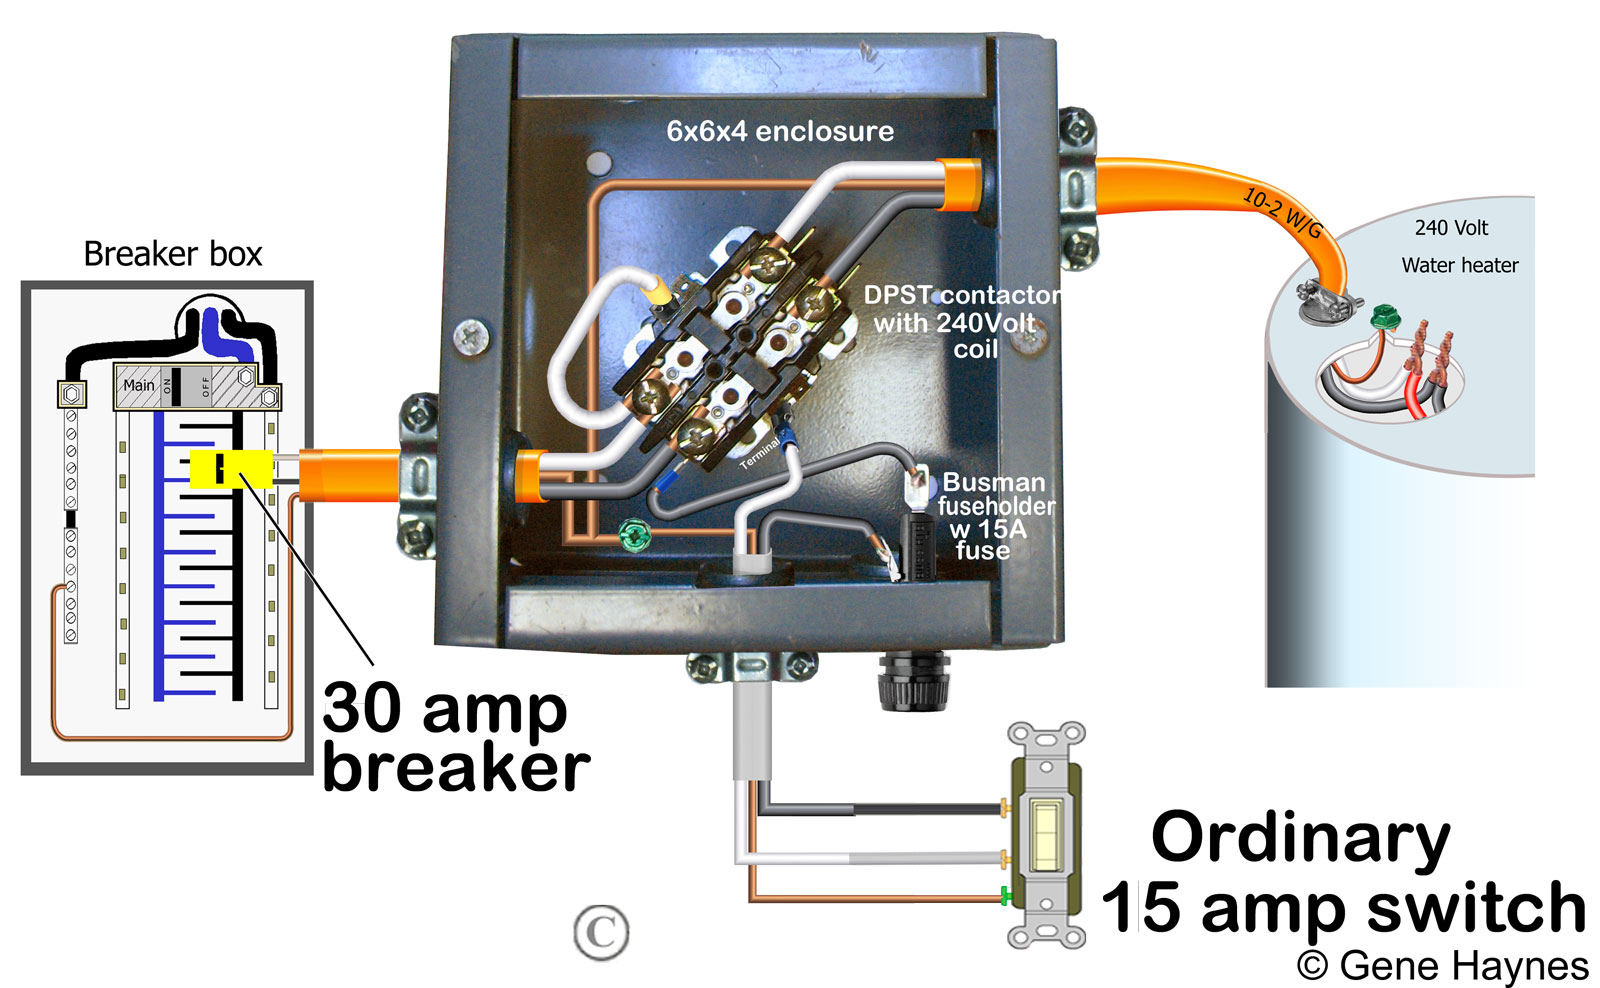 hight resolution of how to wire water heater with switches timers water heater fuse 30 amp breaker box